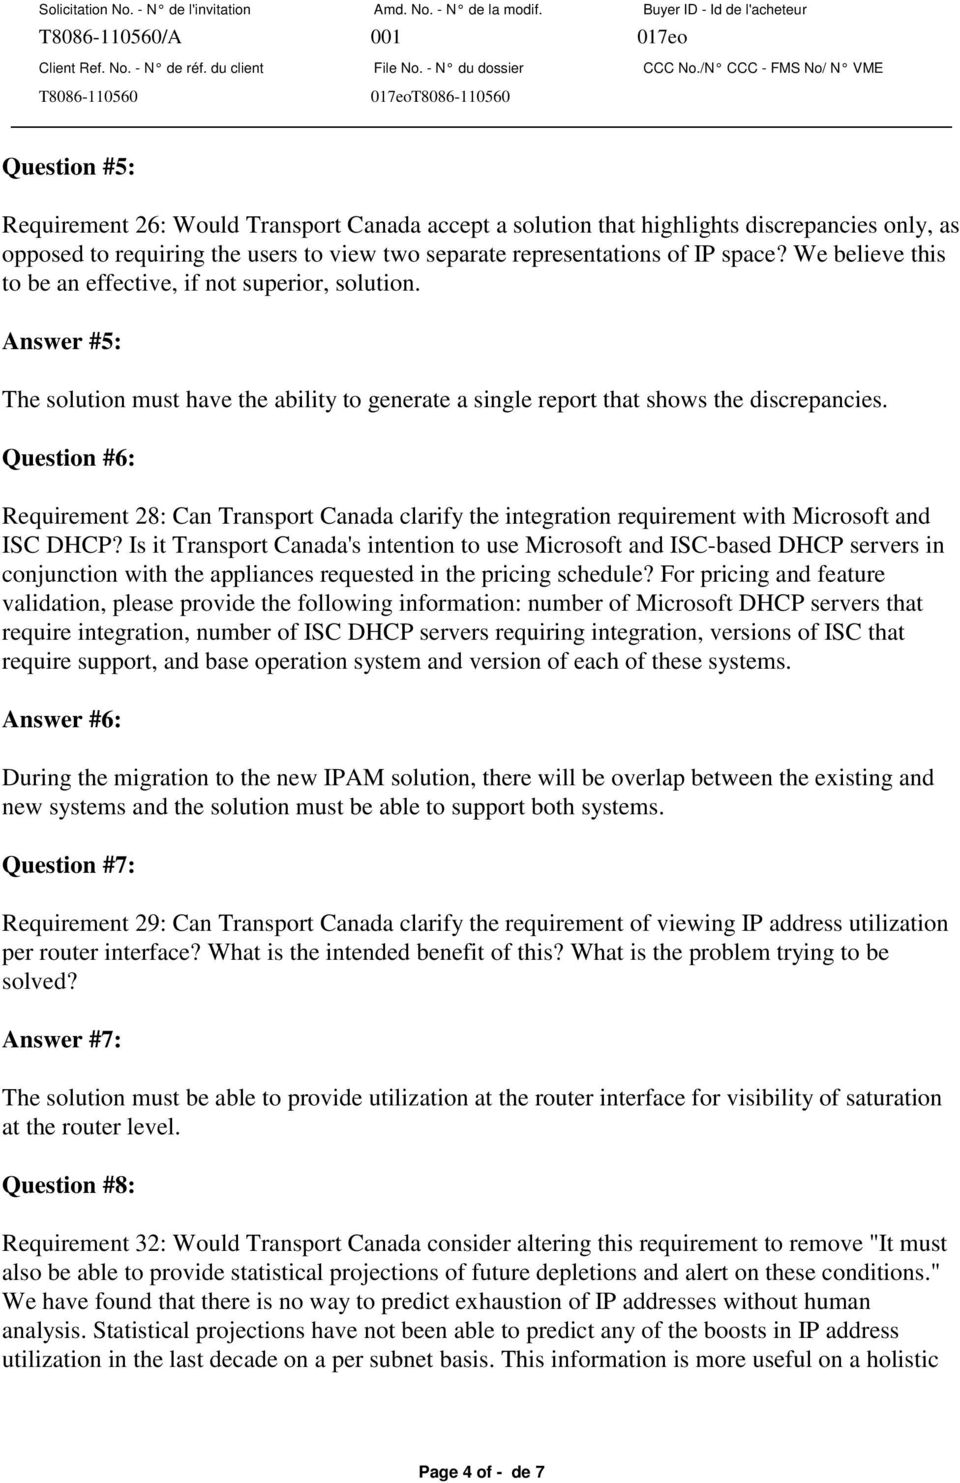 Question #6: Requirement 28: Can Transport Canada clarify the integration requirement with Microsoft and ISC DHCP?